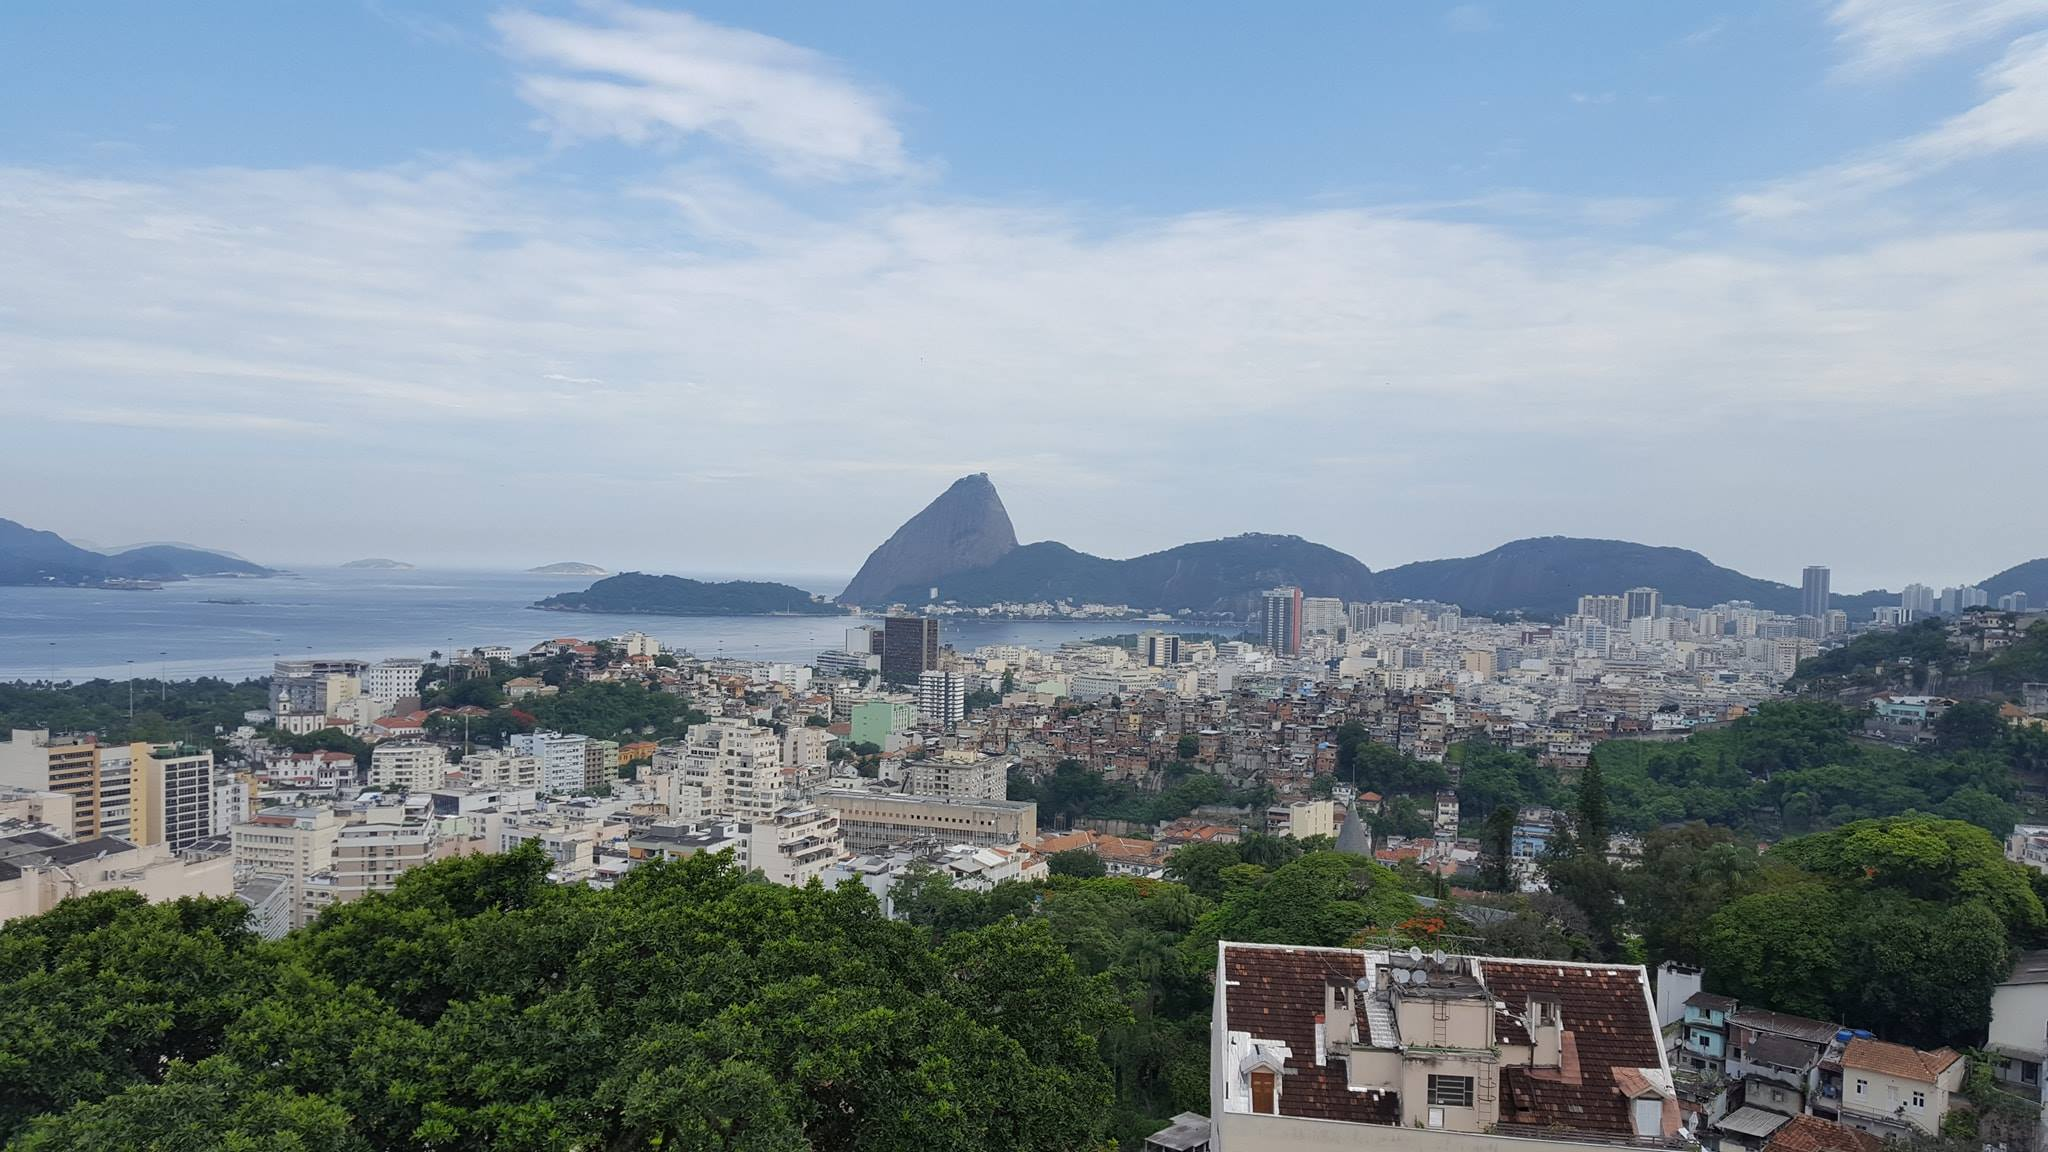 View of Rio from the top of Santa teresa!